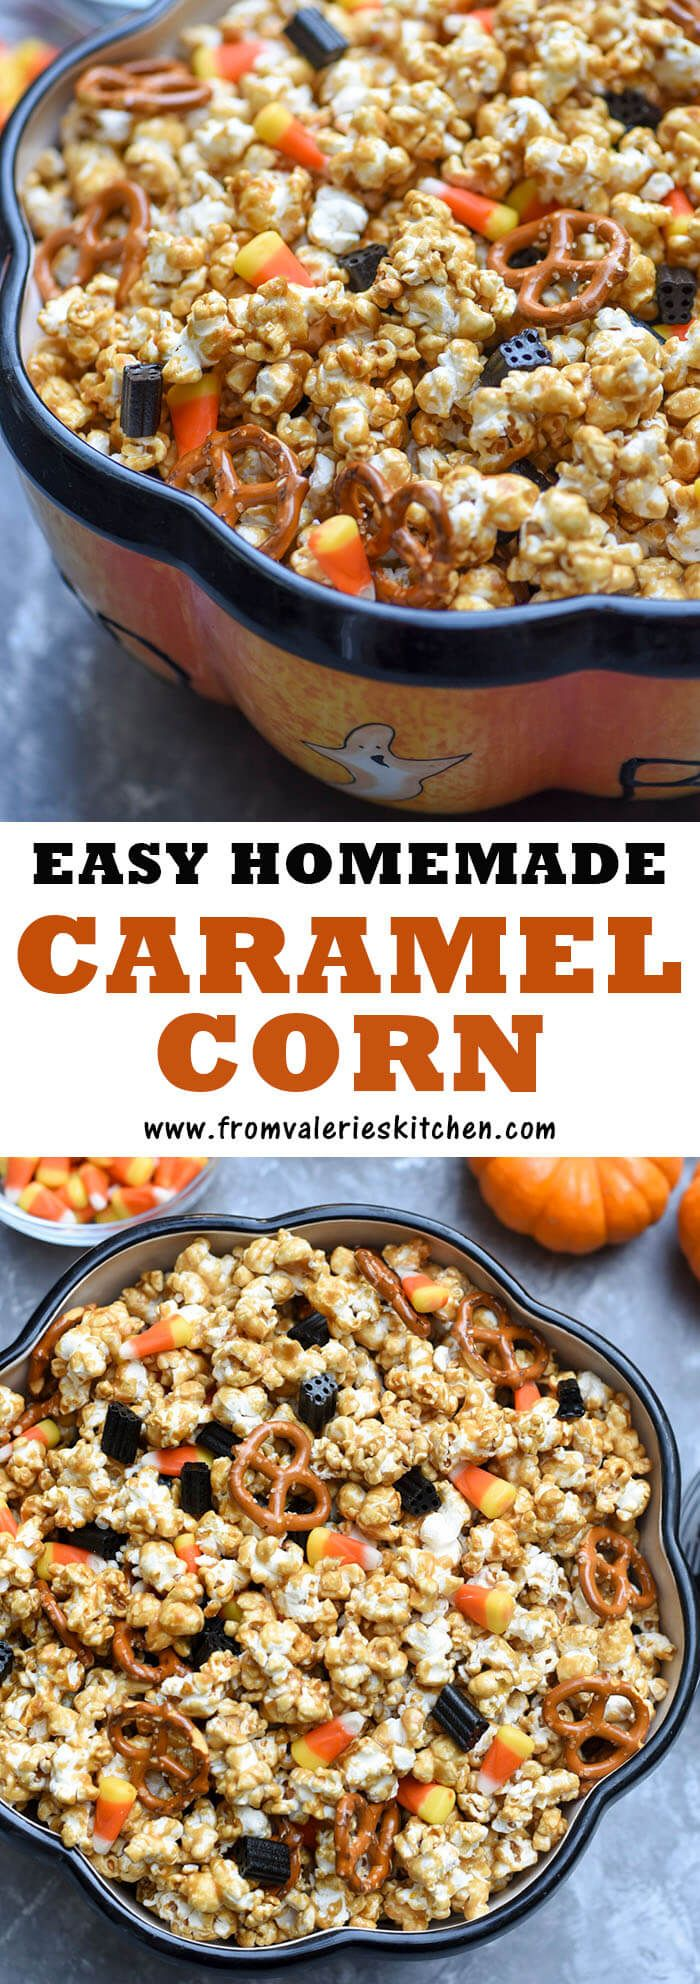 It is fun and easy to make crunchy, sweet Caramel Corn at home. Watch the video tutorial and get the no-fail recipe for this festive treat!